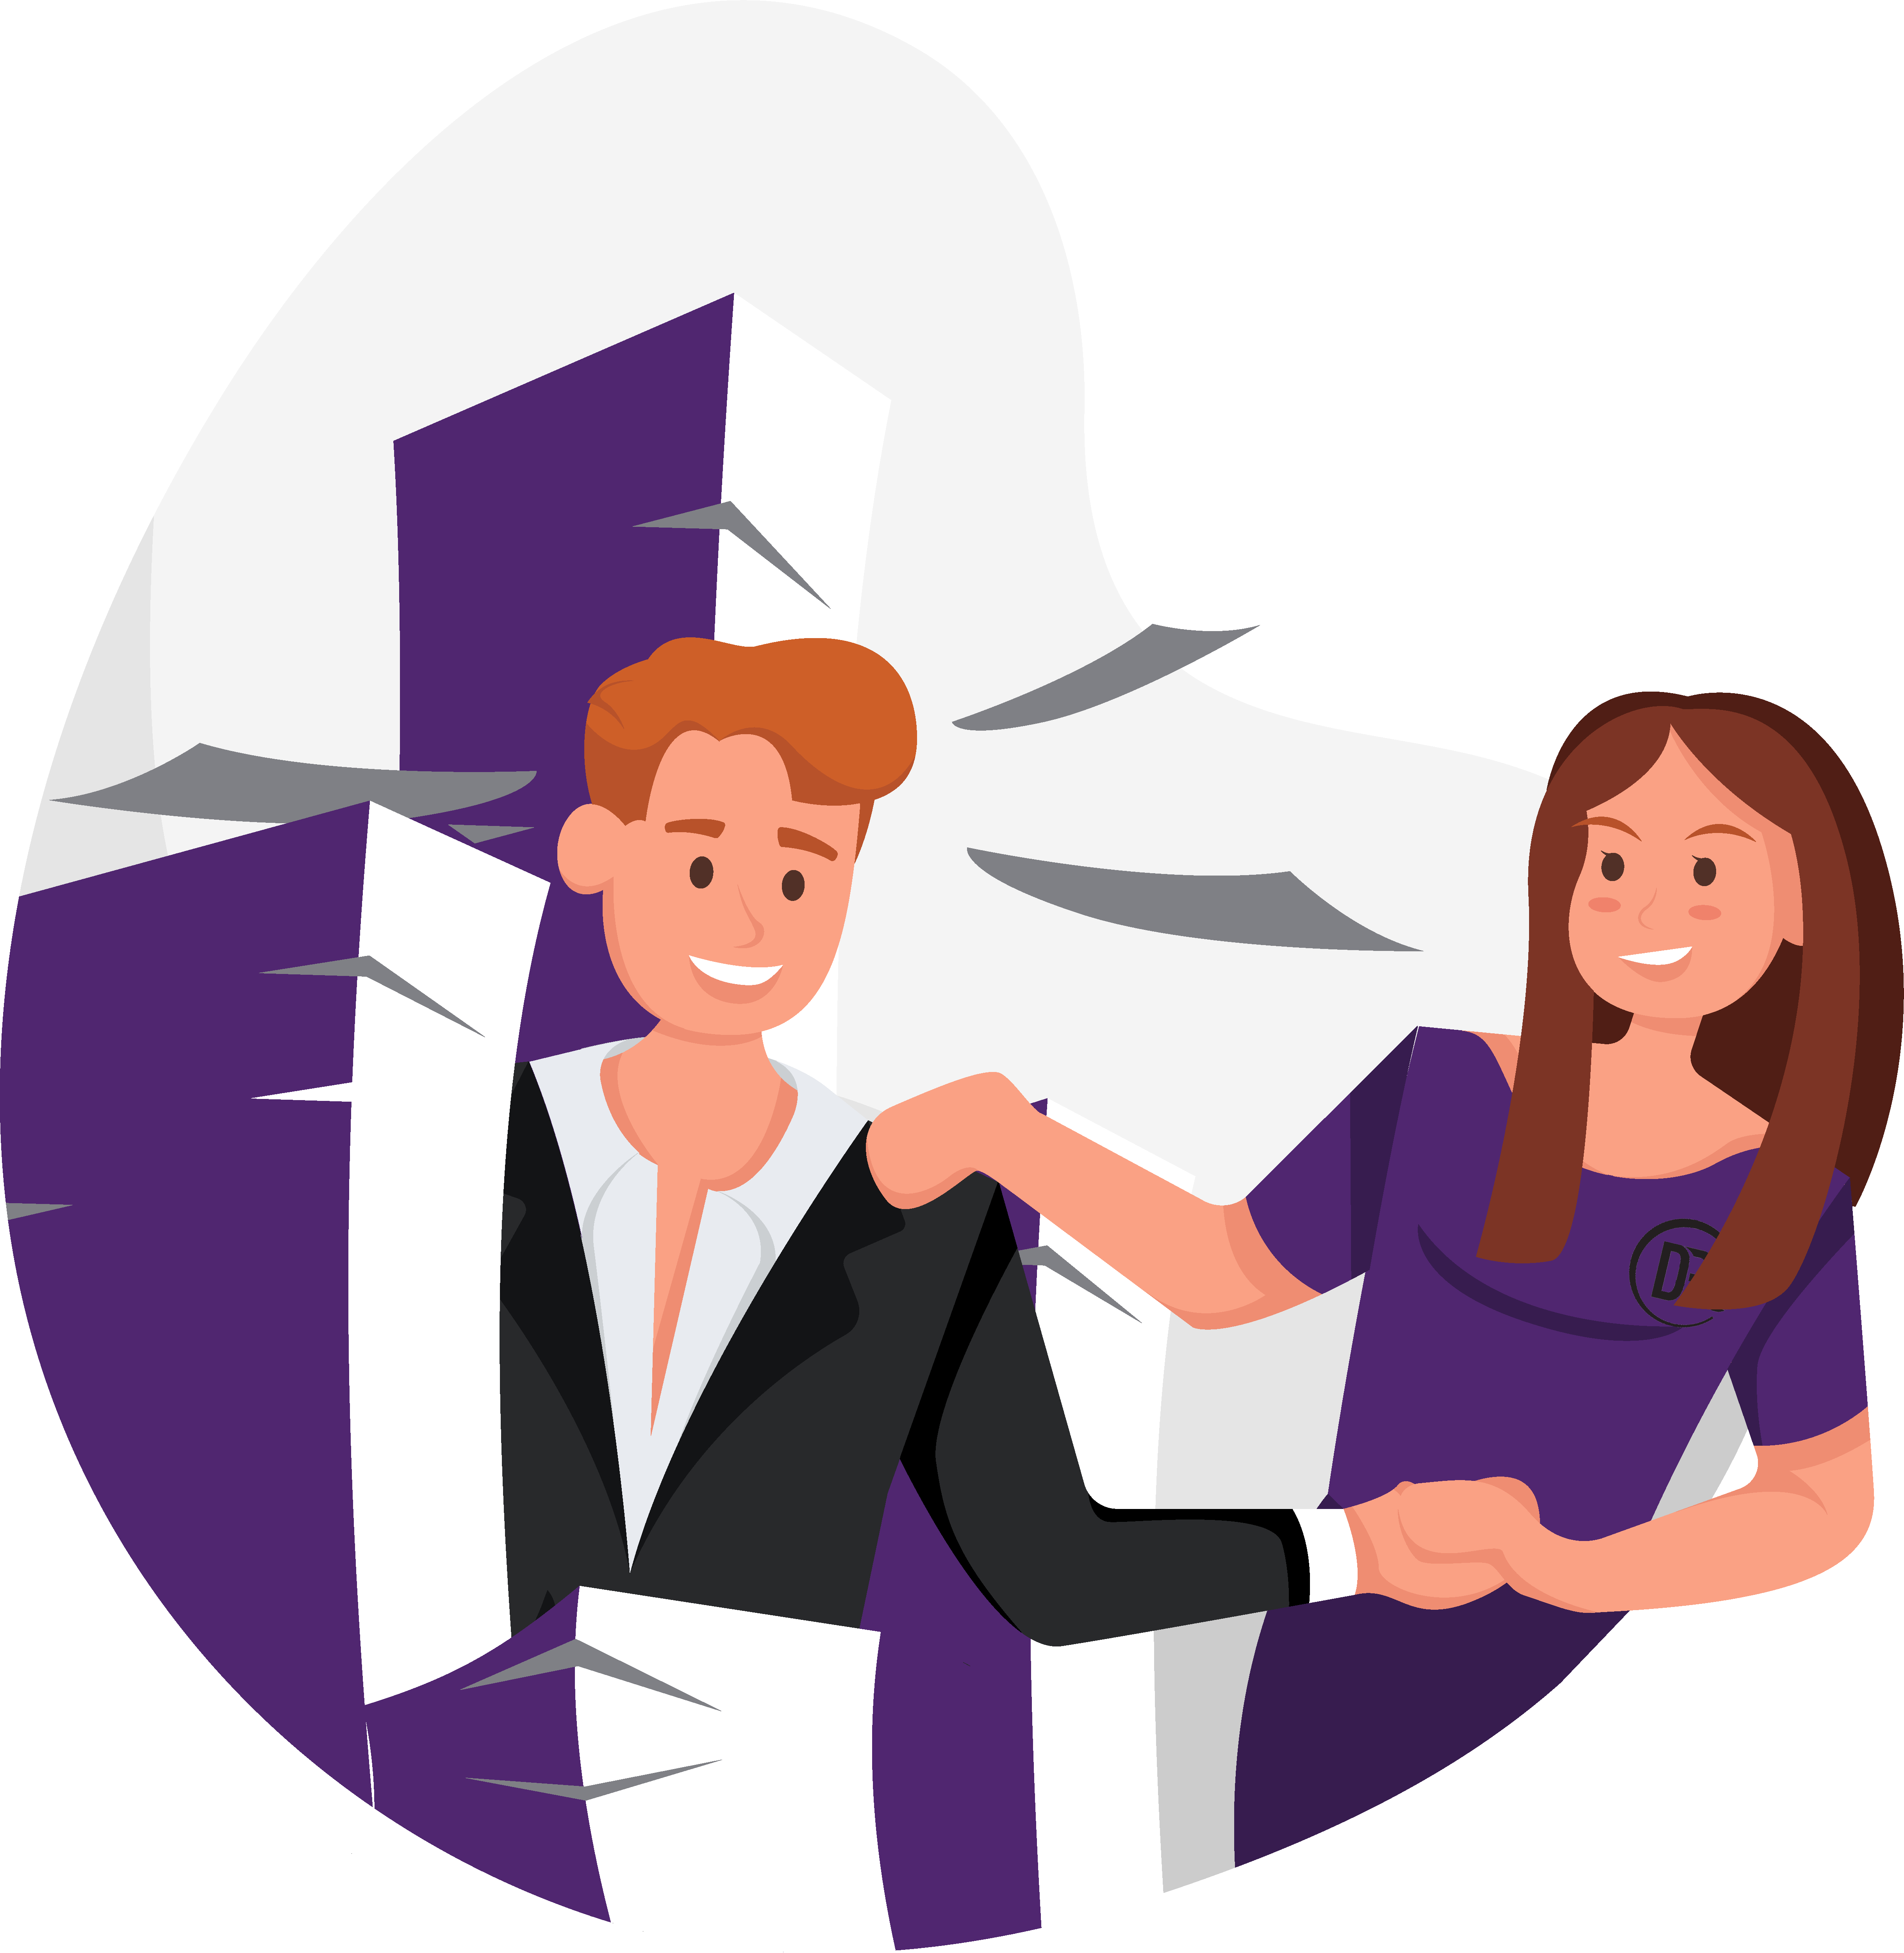 Illustration of a man and woman working with a stack of papers